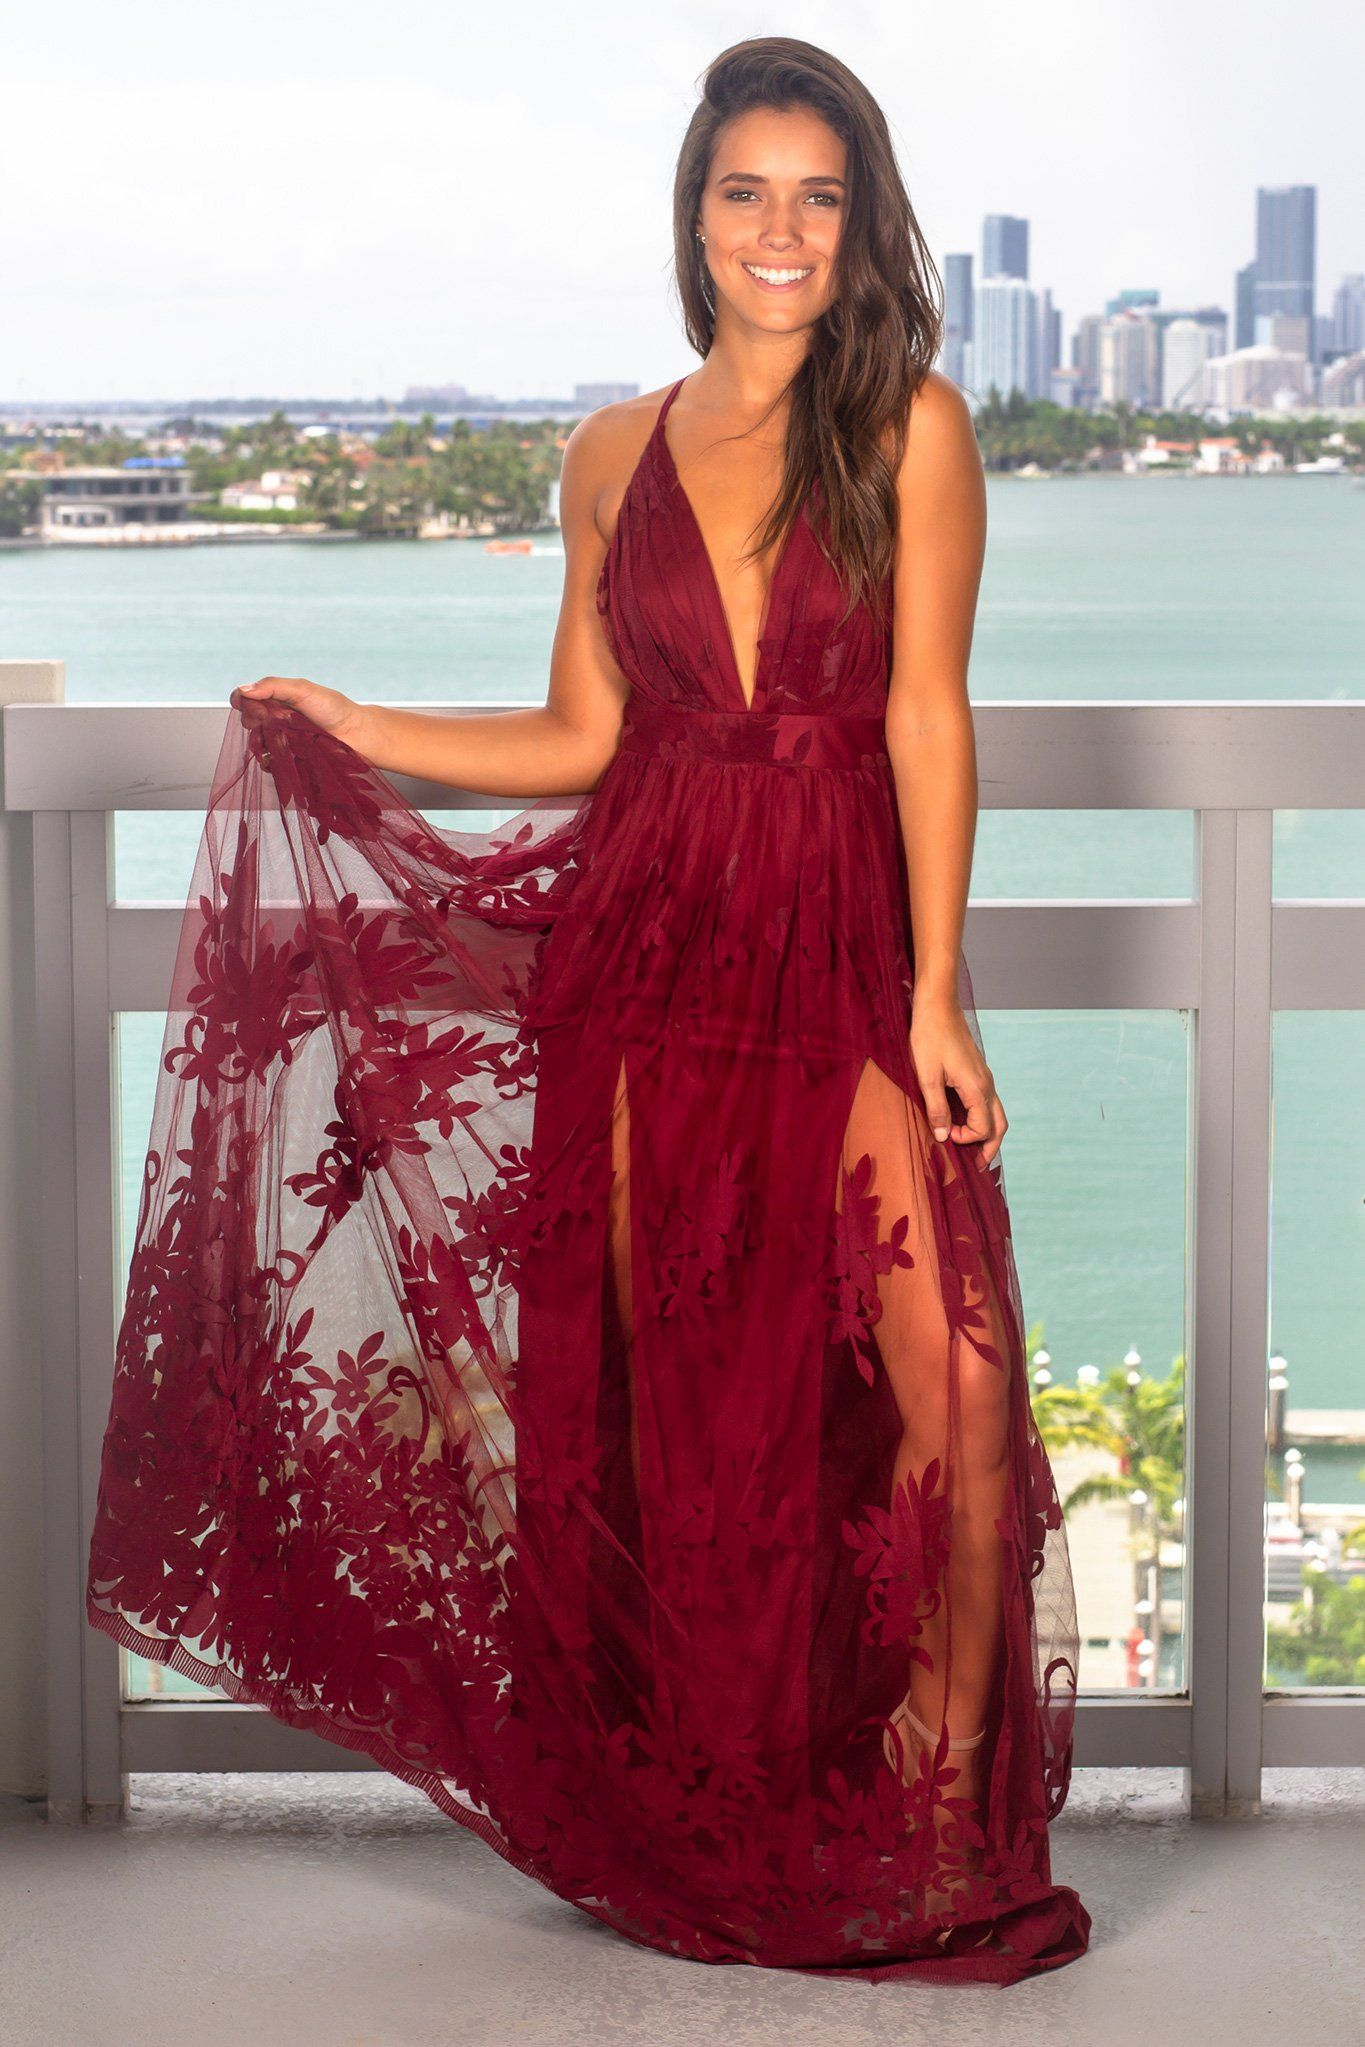 Wine Floral Tulle Maxi Dress With Criss Cross Back Maxi Dress Floral Maxi Dress Dresses